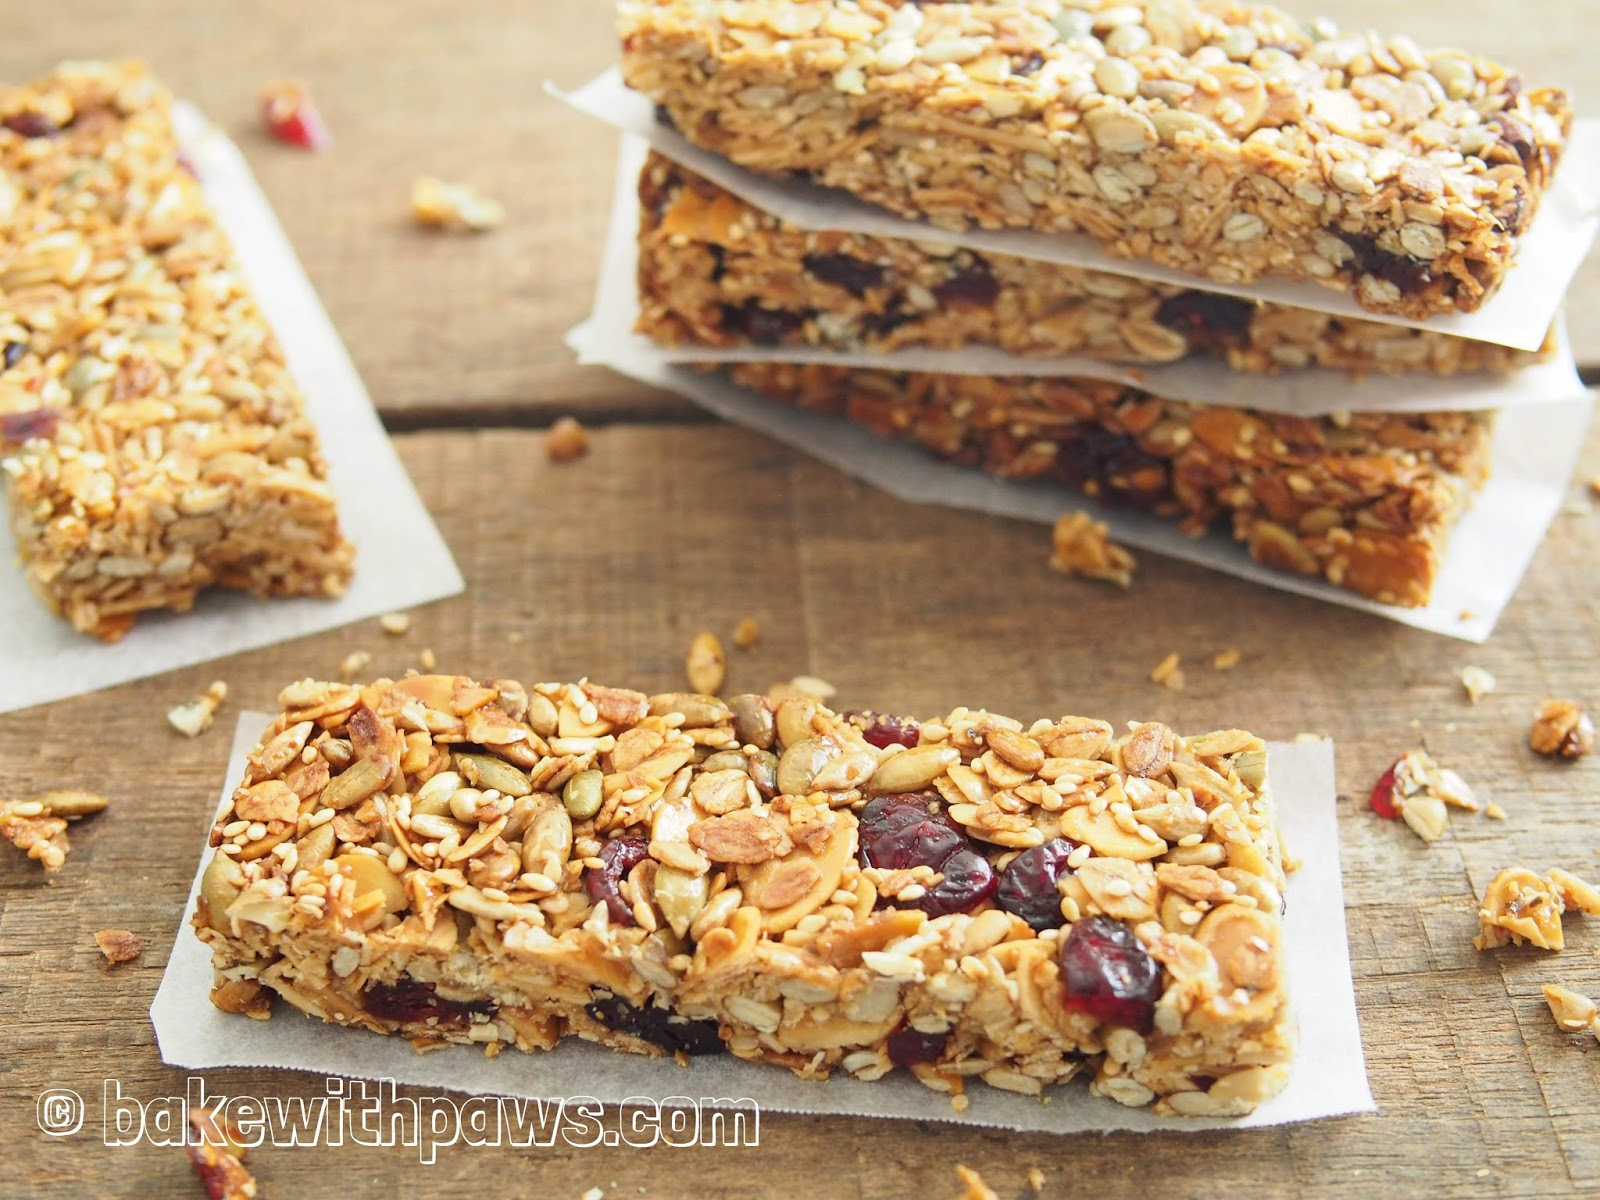 To Put A Little Variety Into My Breakfast I Made This Healthy Homemade Granola Bar Did Not Use Any Sugar So Wont Feel Guilty If Eat More